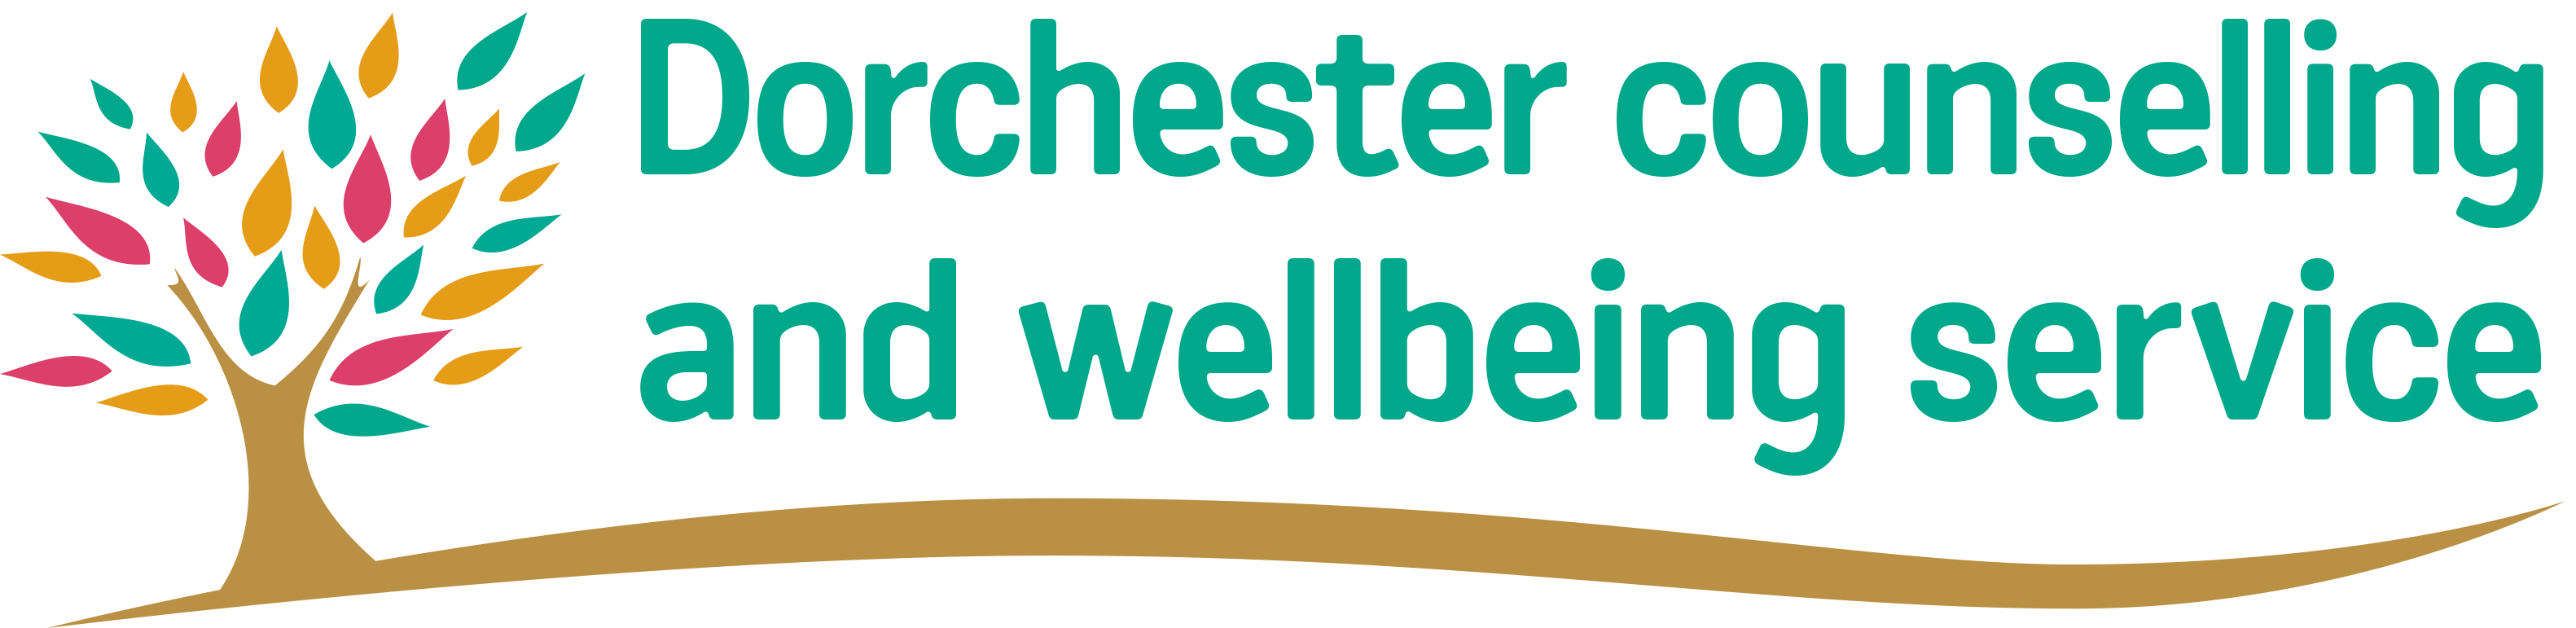 Dorchester counselling and wellbeing